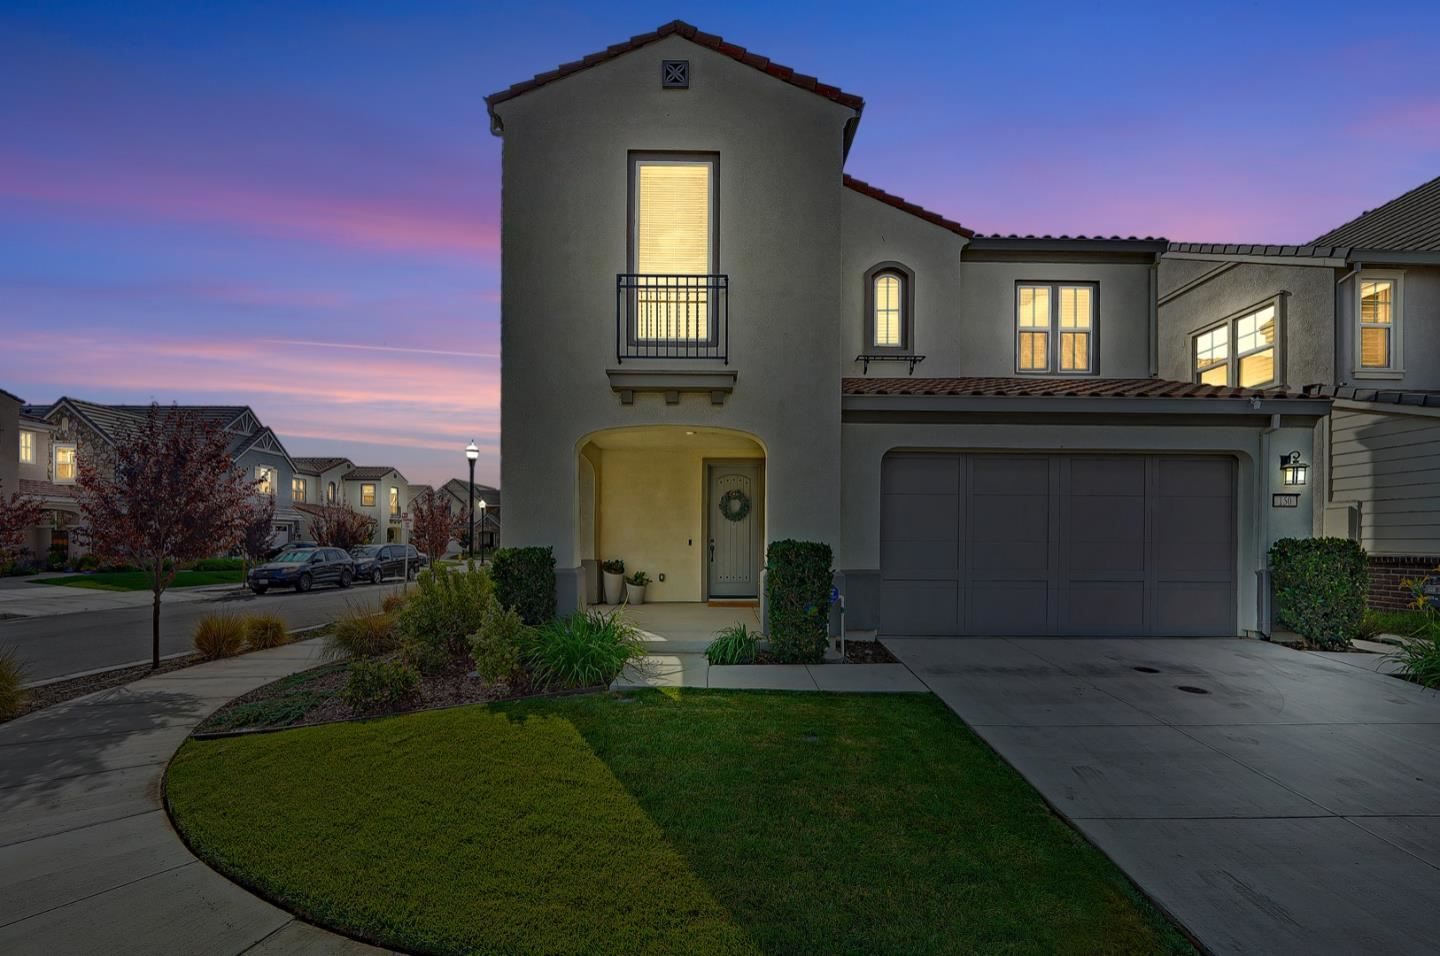 Photo for 150 Sandpiper Way, GILROY, CA 95020 (MLS # ML81866351)